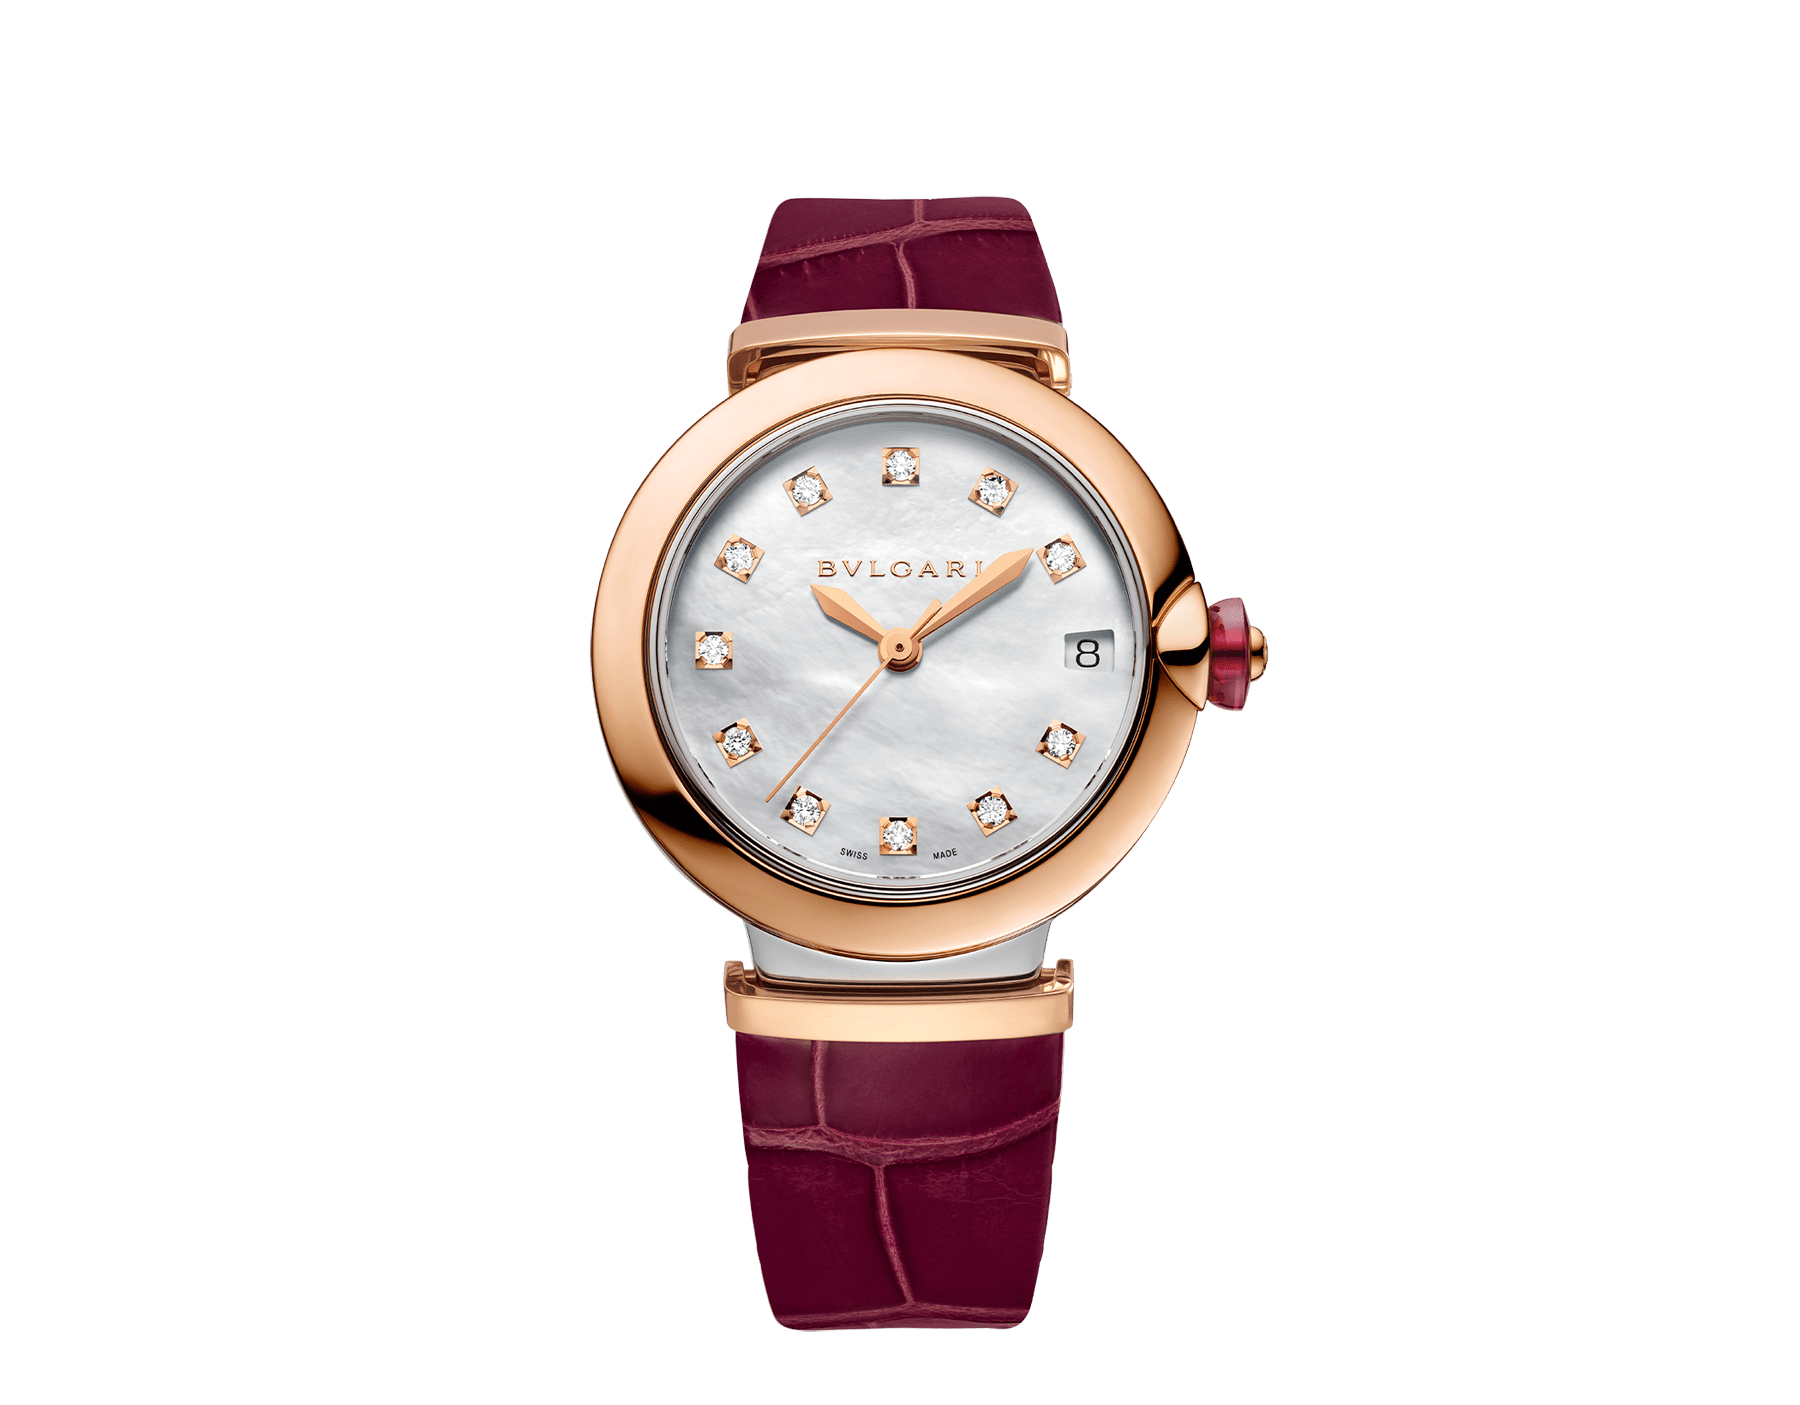 LVCEA watch with 18 kt rose gold and stainless steel case, white mother-of-pearl dial set with diamond indexes, date aperture and burgundy alligator bracelet. 102639 image 1